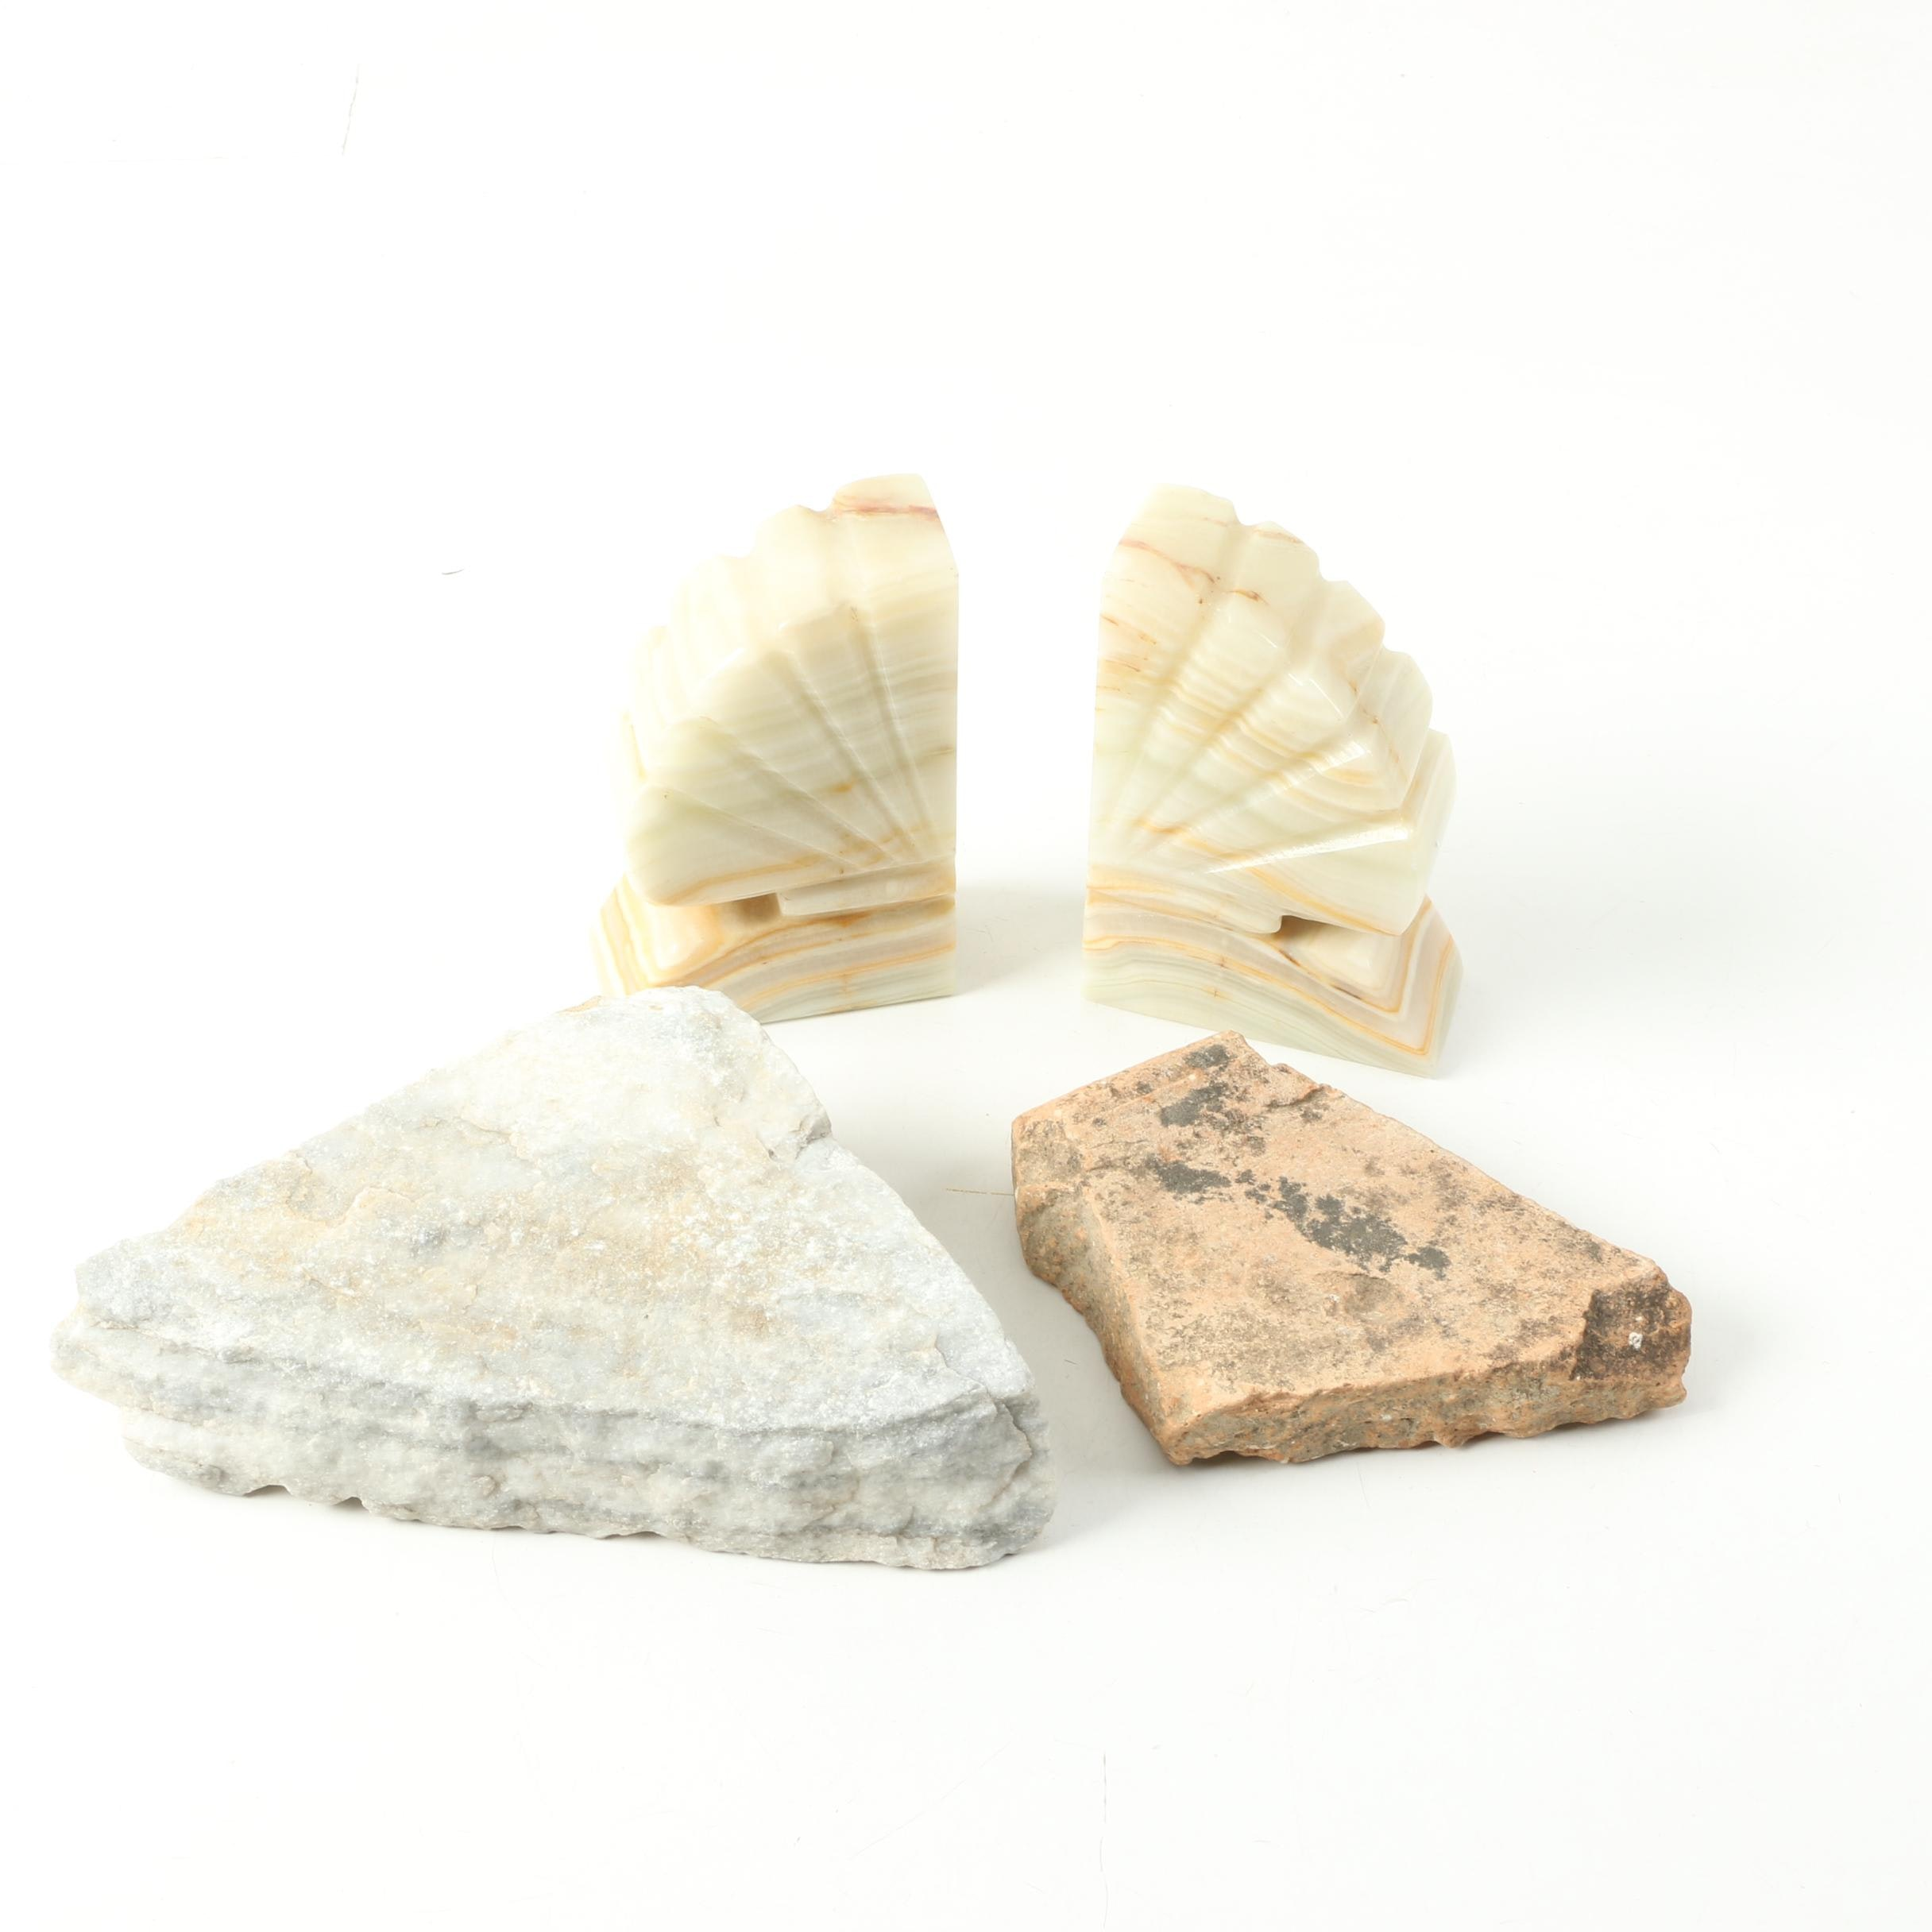 Banded Calcite Bookends and Rock Slabs